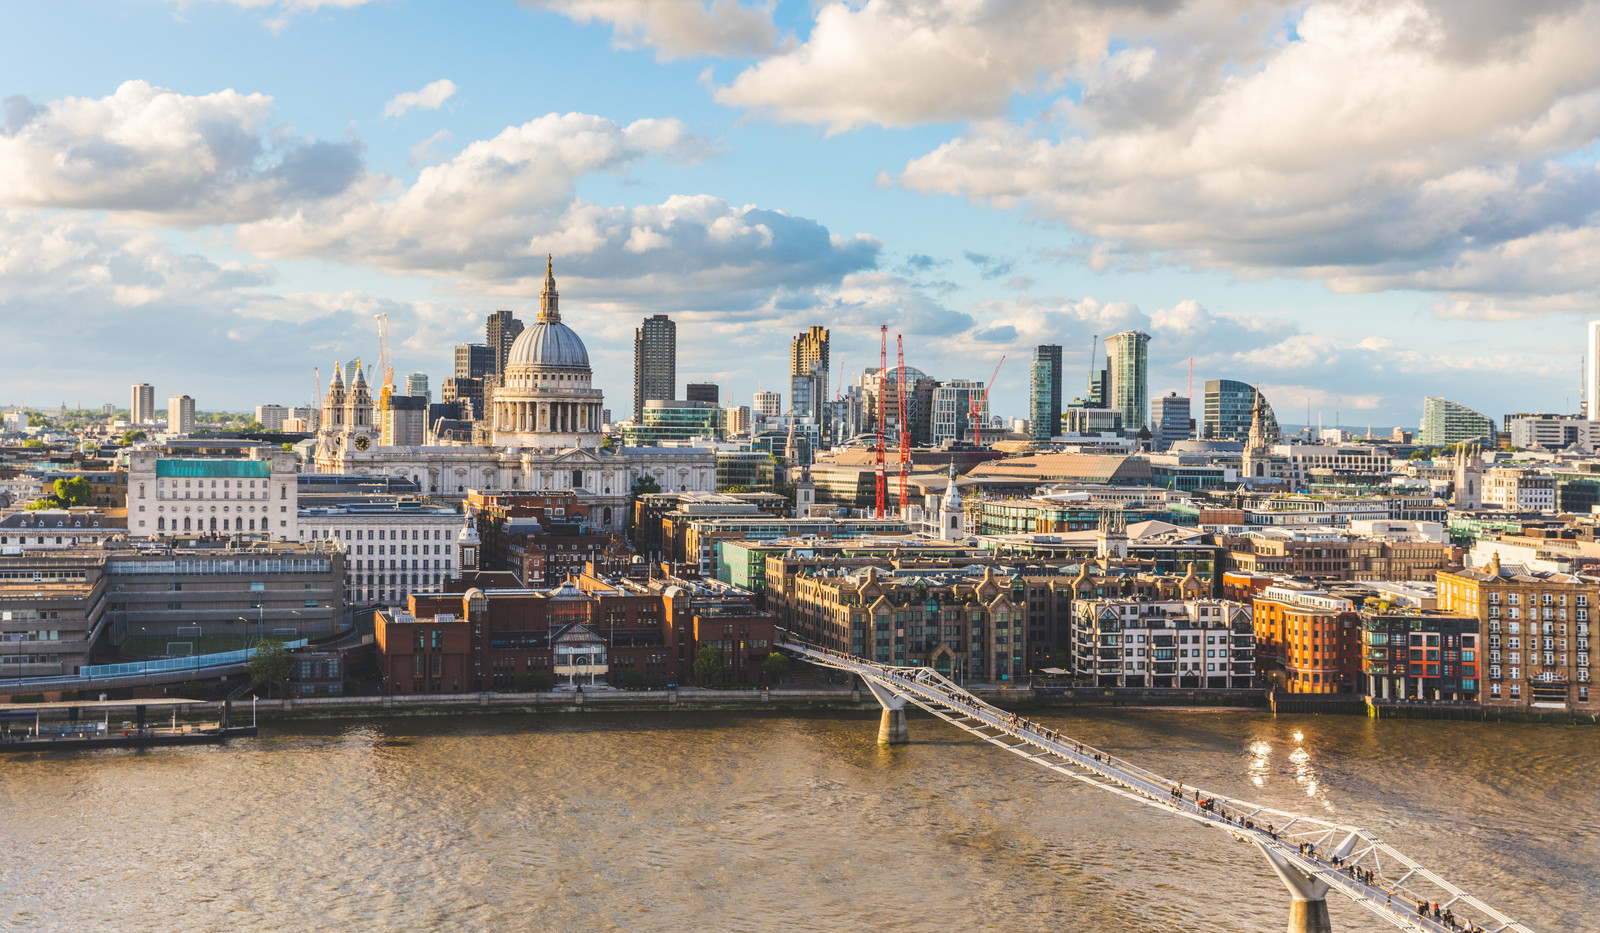 Canva - London and St Paul Cathedral at